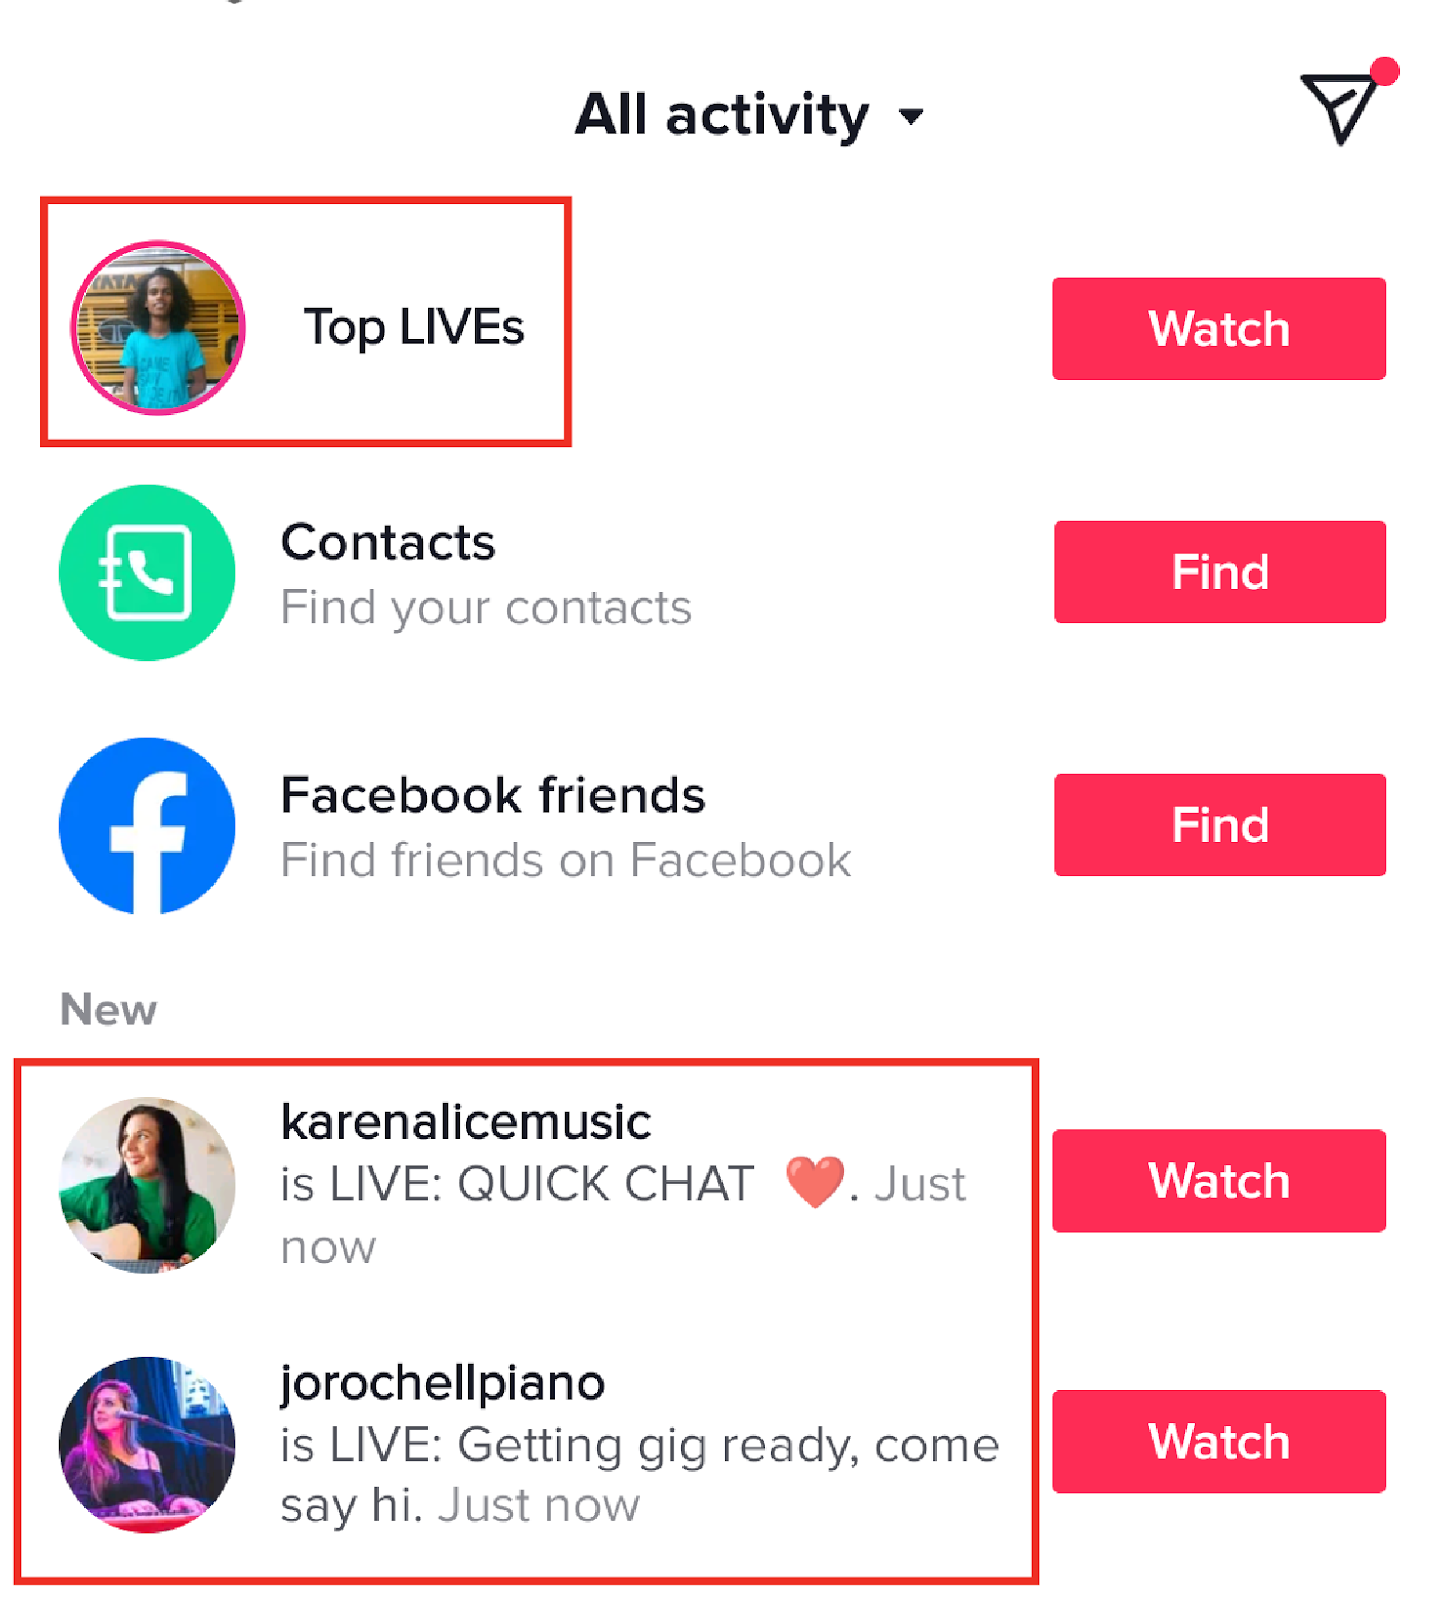 When you go live, your followers get an in-app notification.